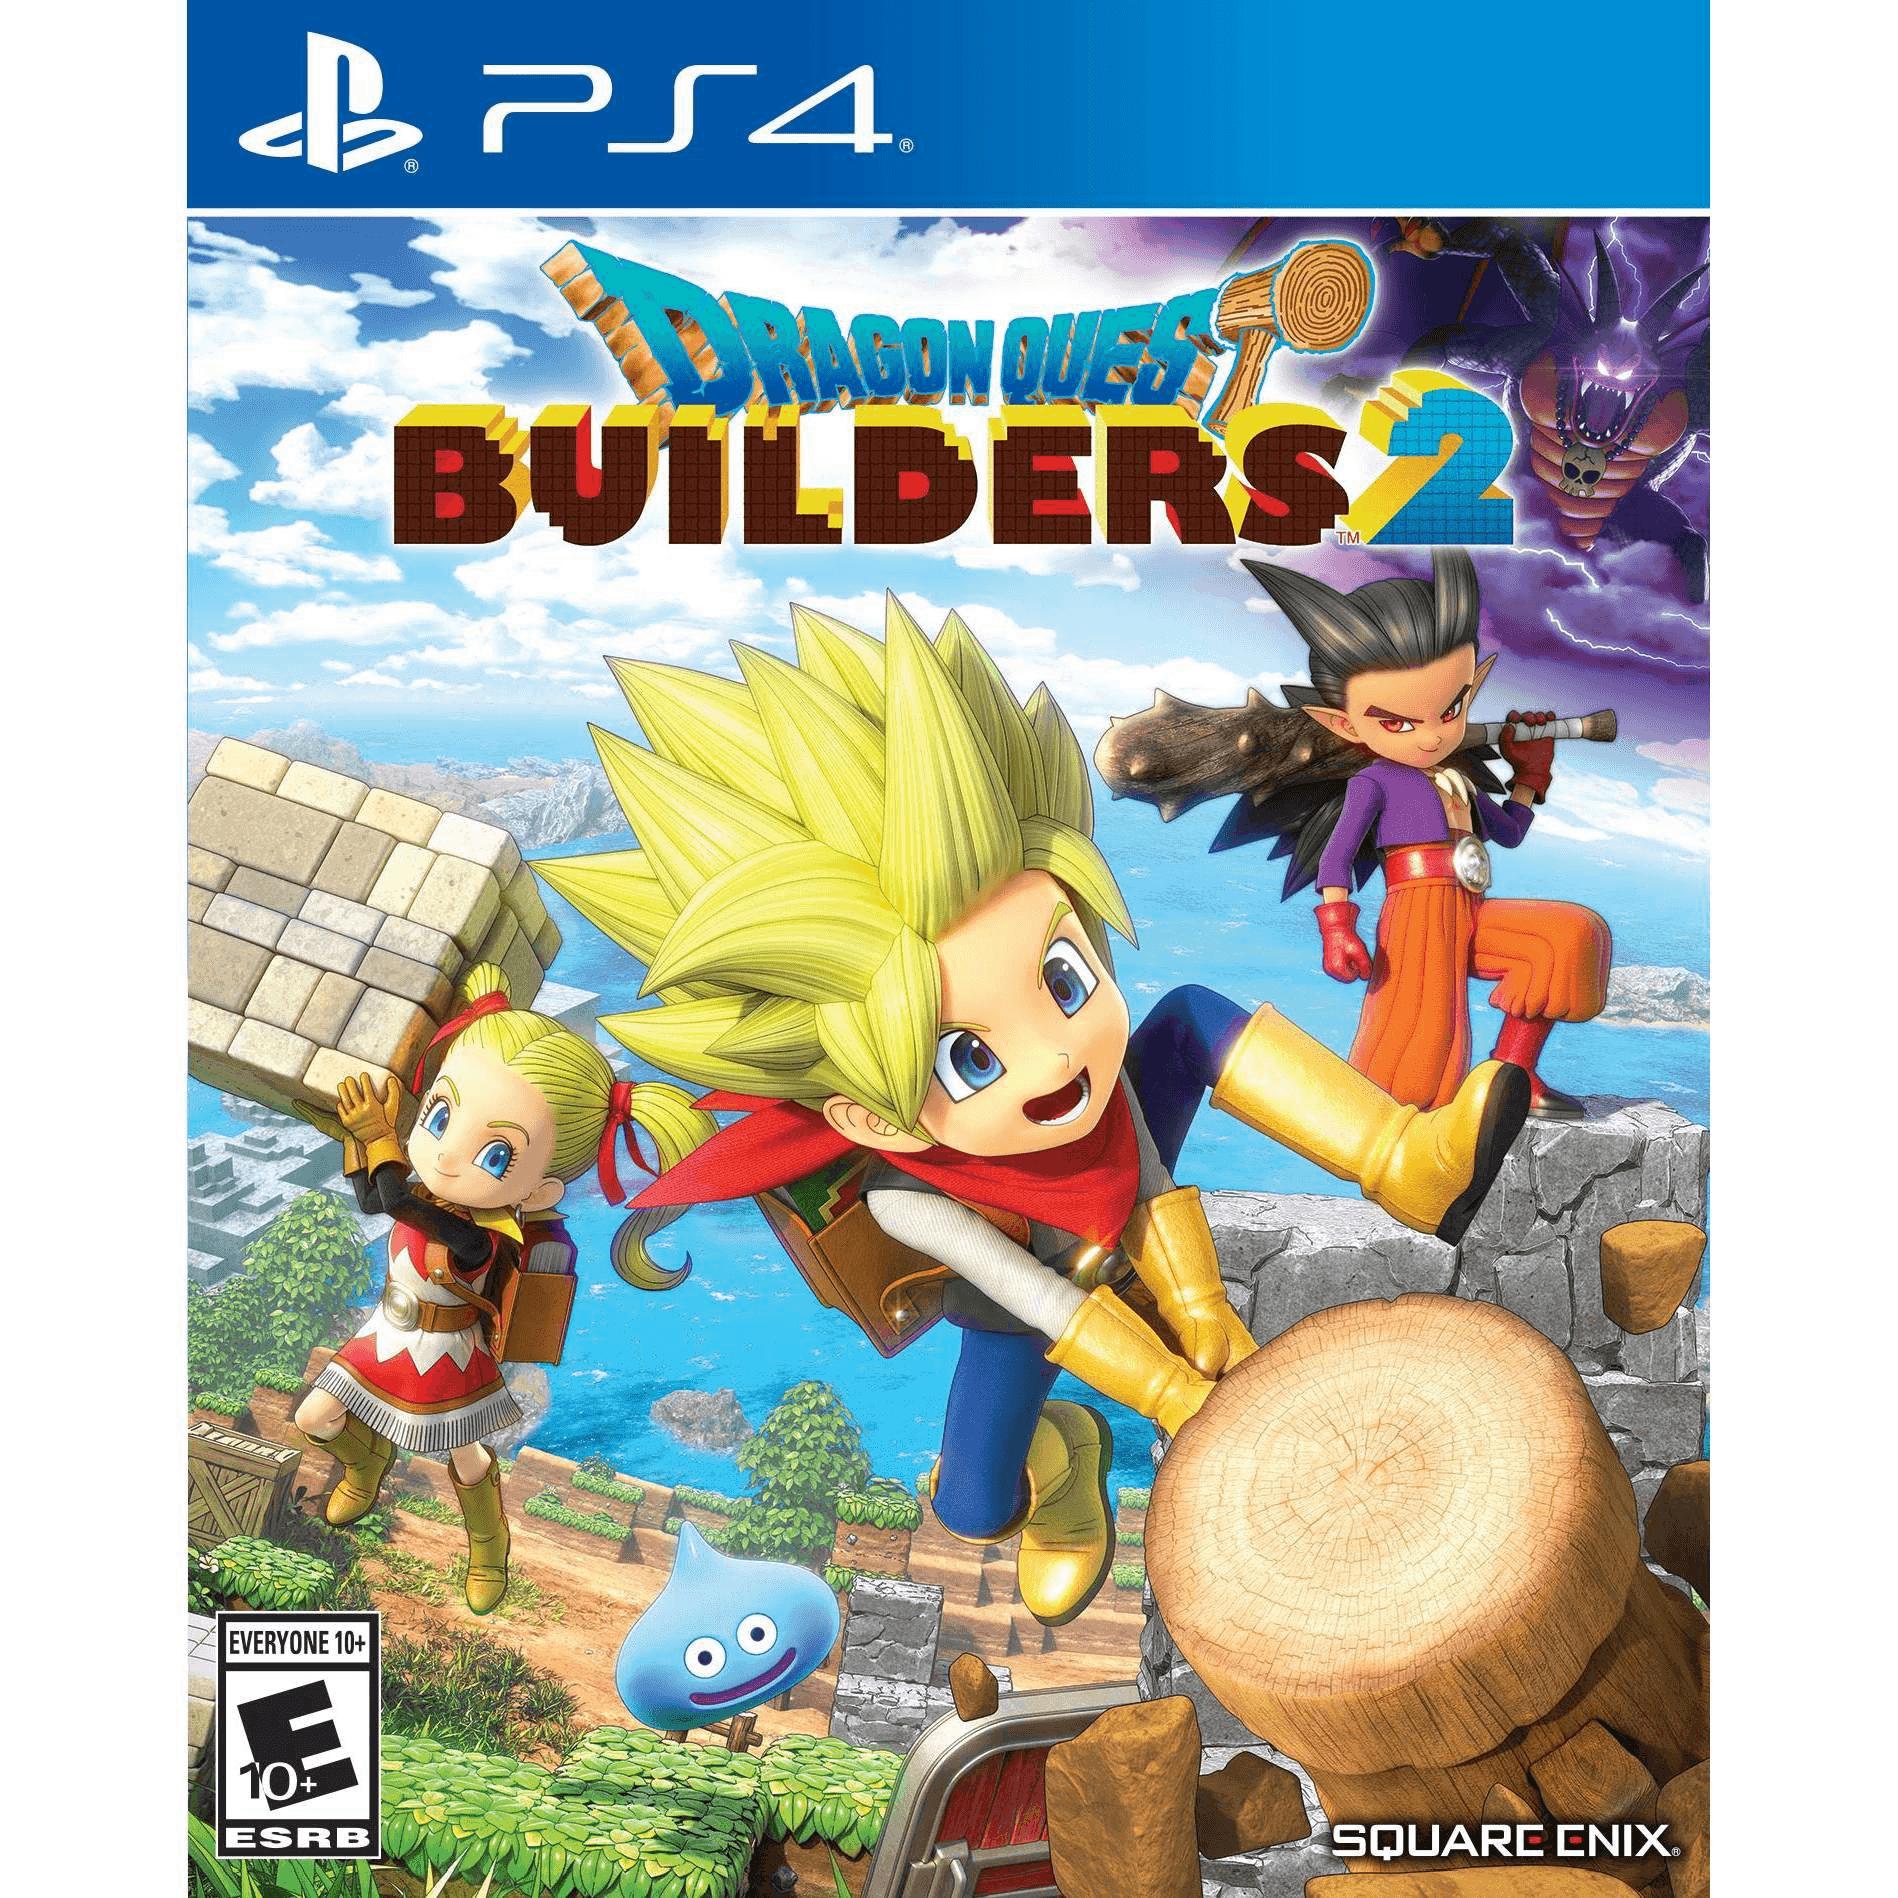 Dragon Quest Builders 2, Square Enix, PlayStation 4, 662248922720